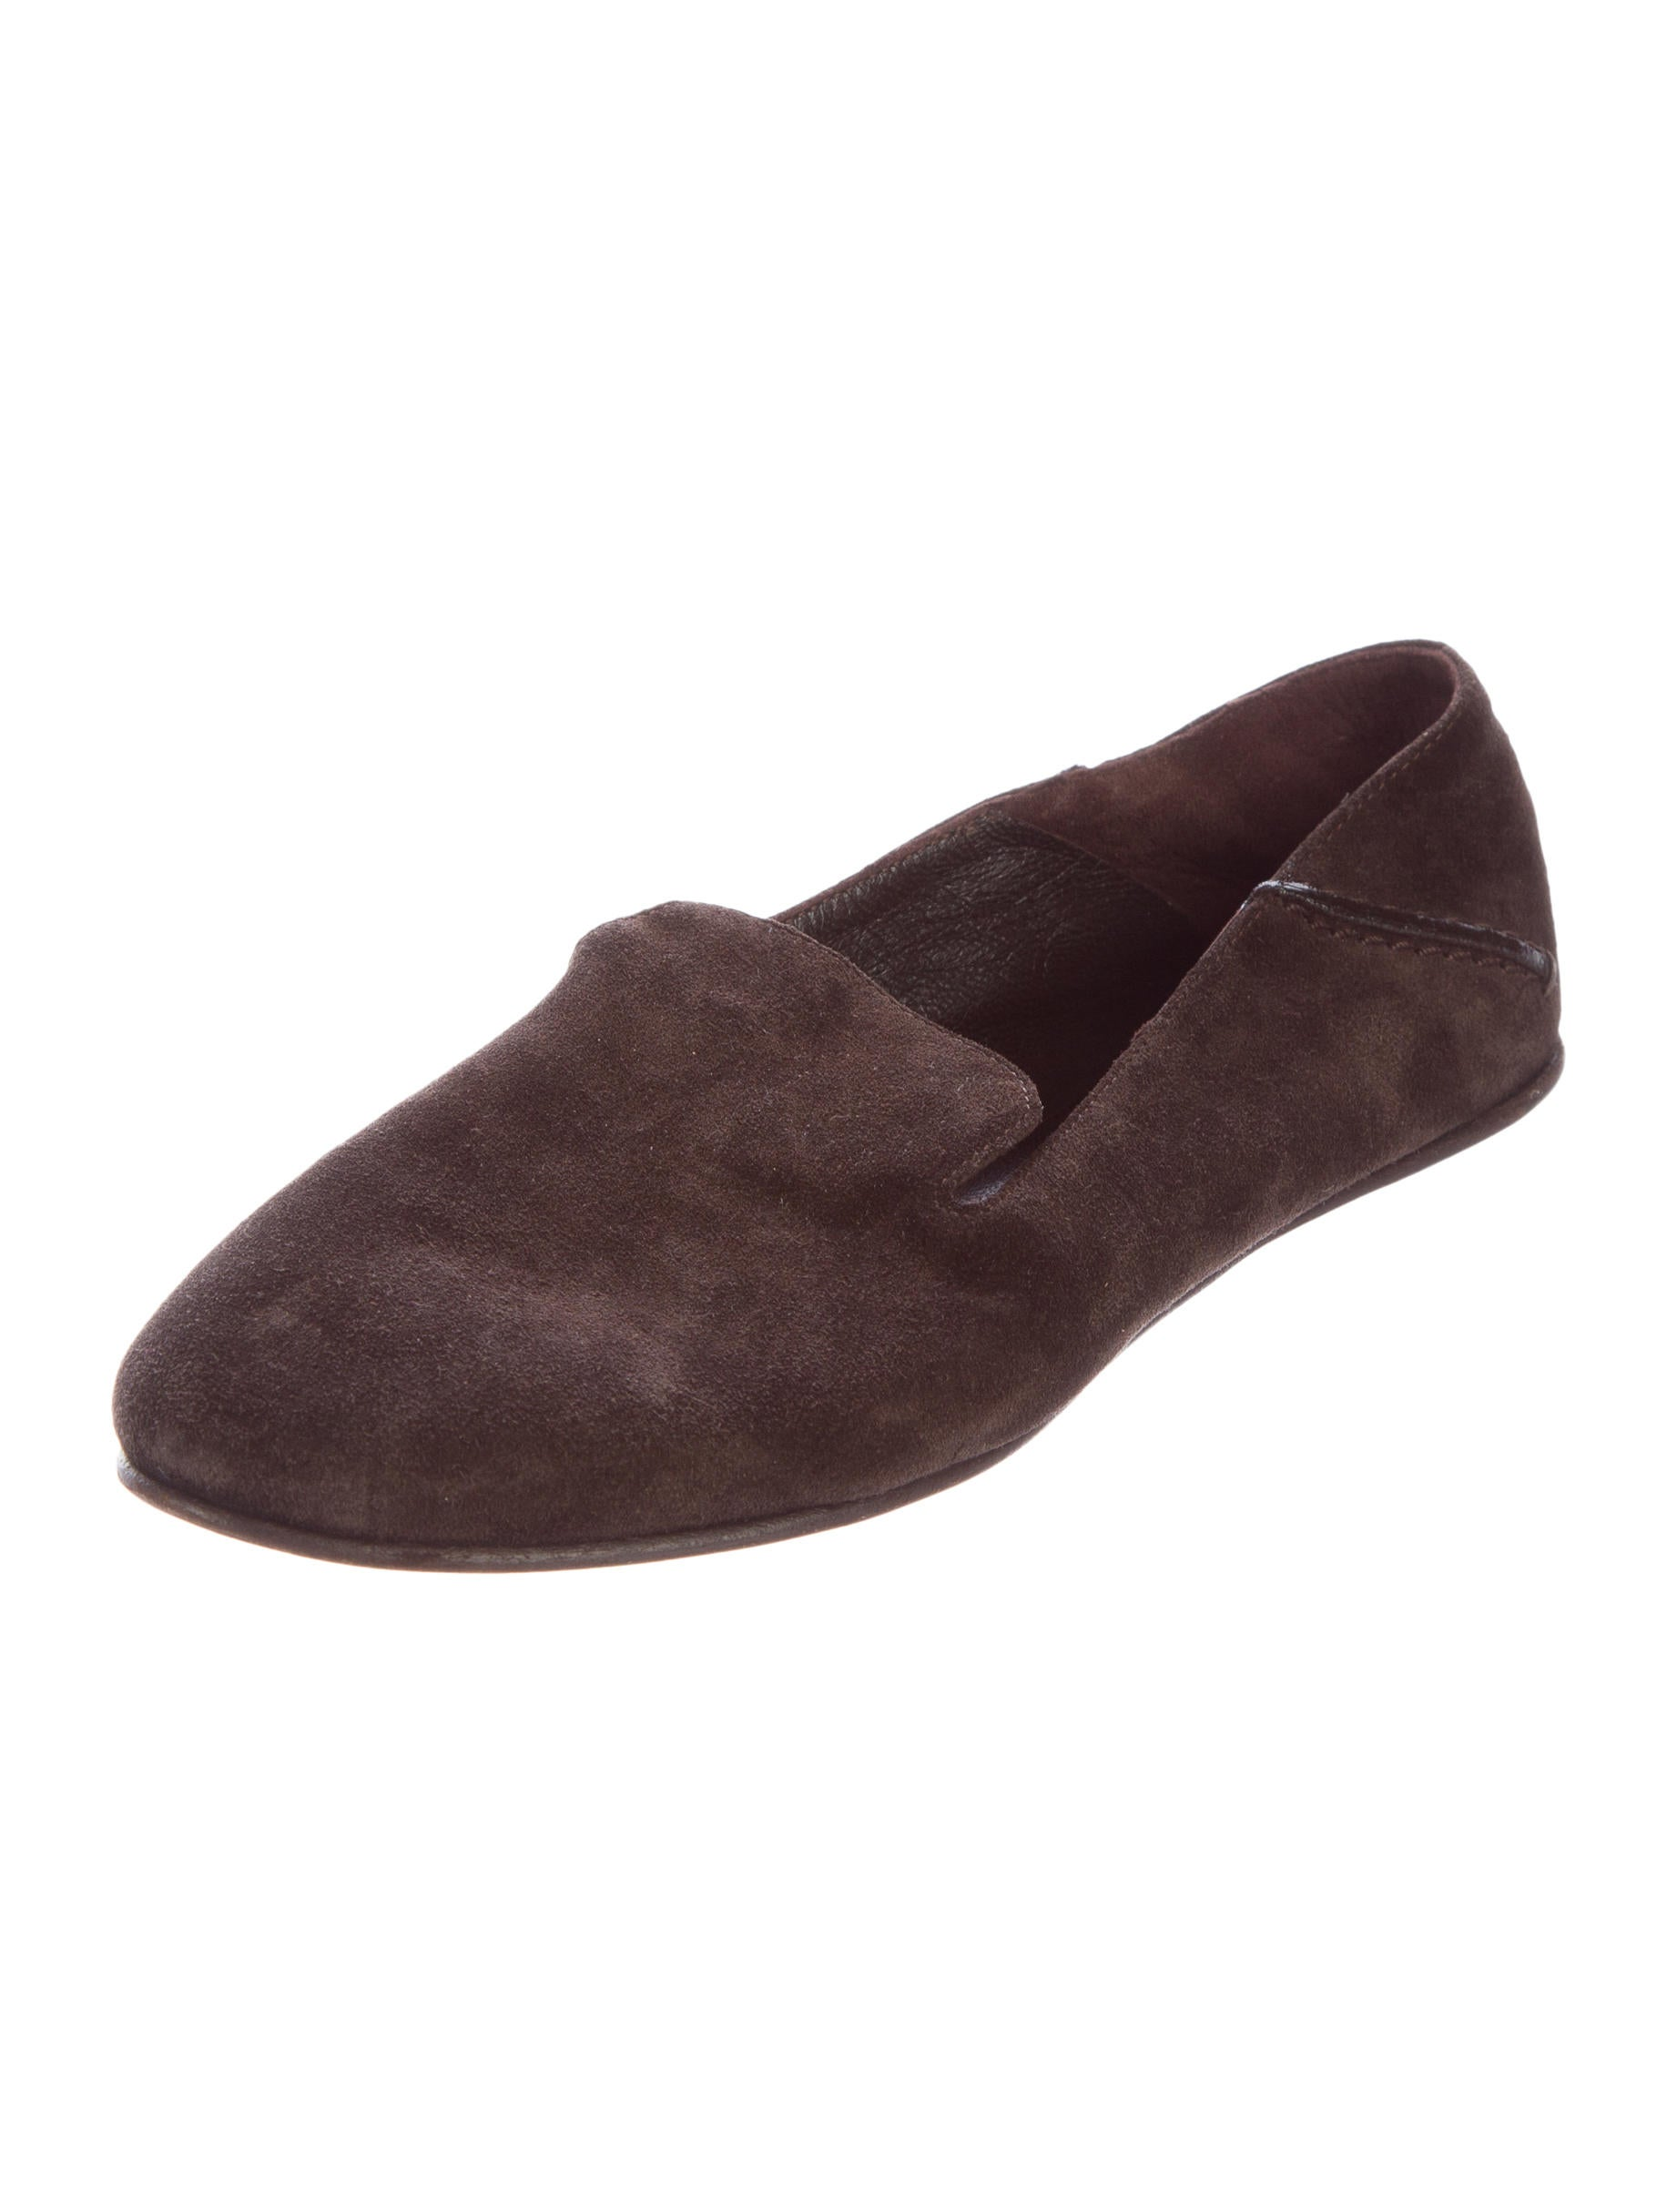 Rochas Suede Round-Toe Loafers outlet order online discount best free shipping visit ssBvQ298